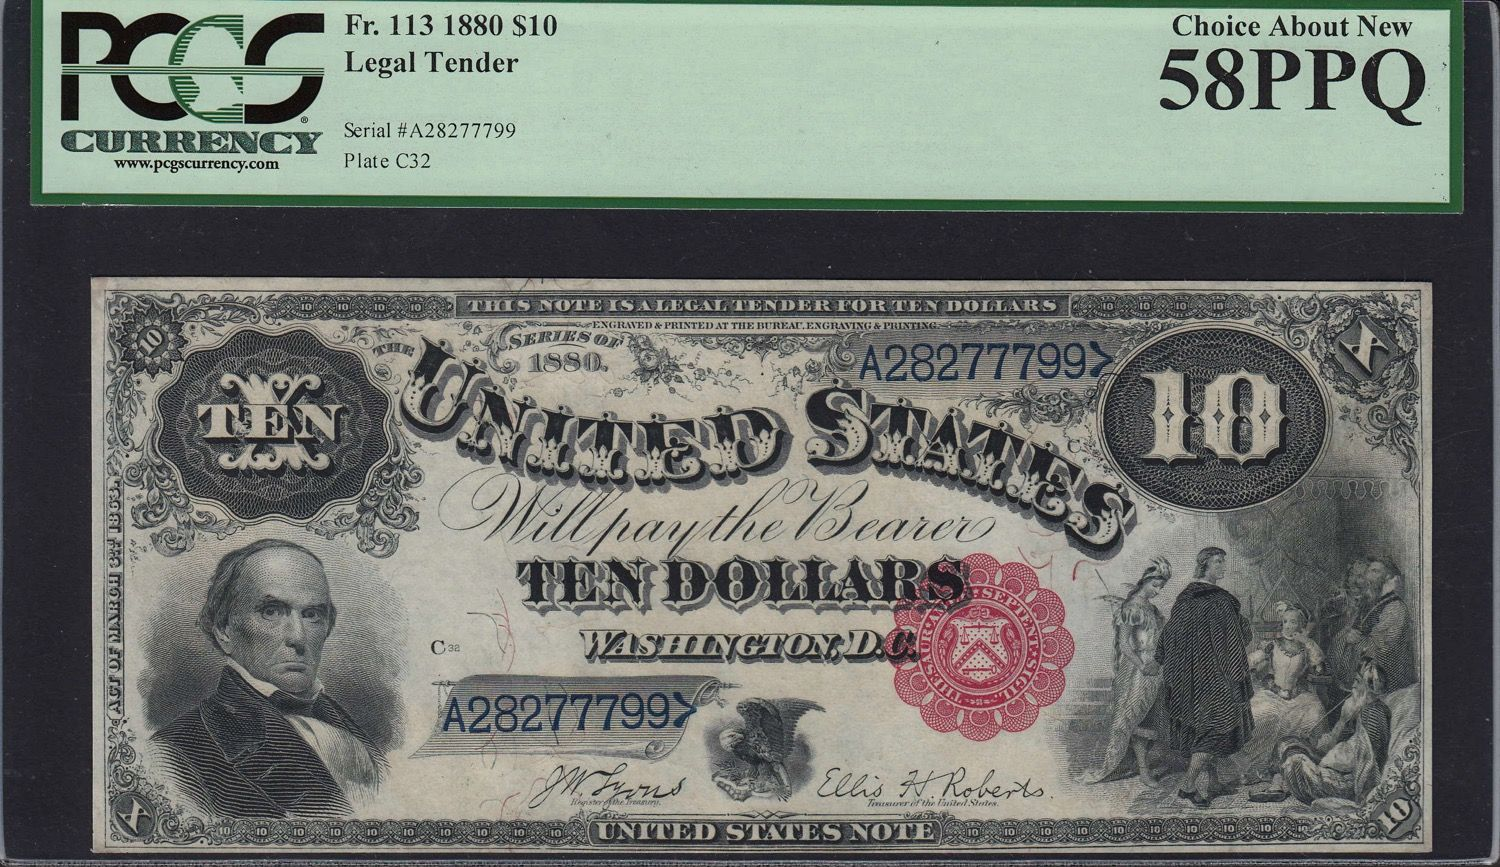 Fr 113 1880 10 Legal Tender Note Lyons Roberts Pcgs Currency Choice About New 58 Ppq Fr 113 1880 10 Legal Tender Legal Tender Coin Auctions Currency